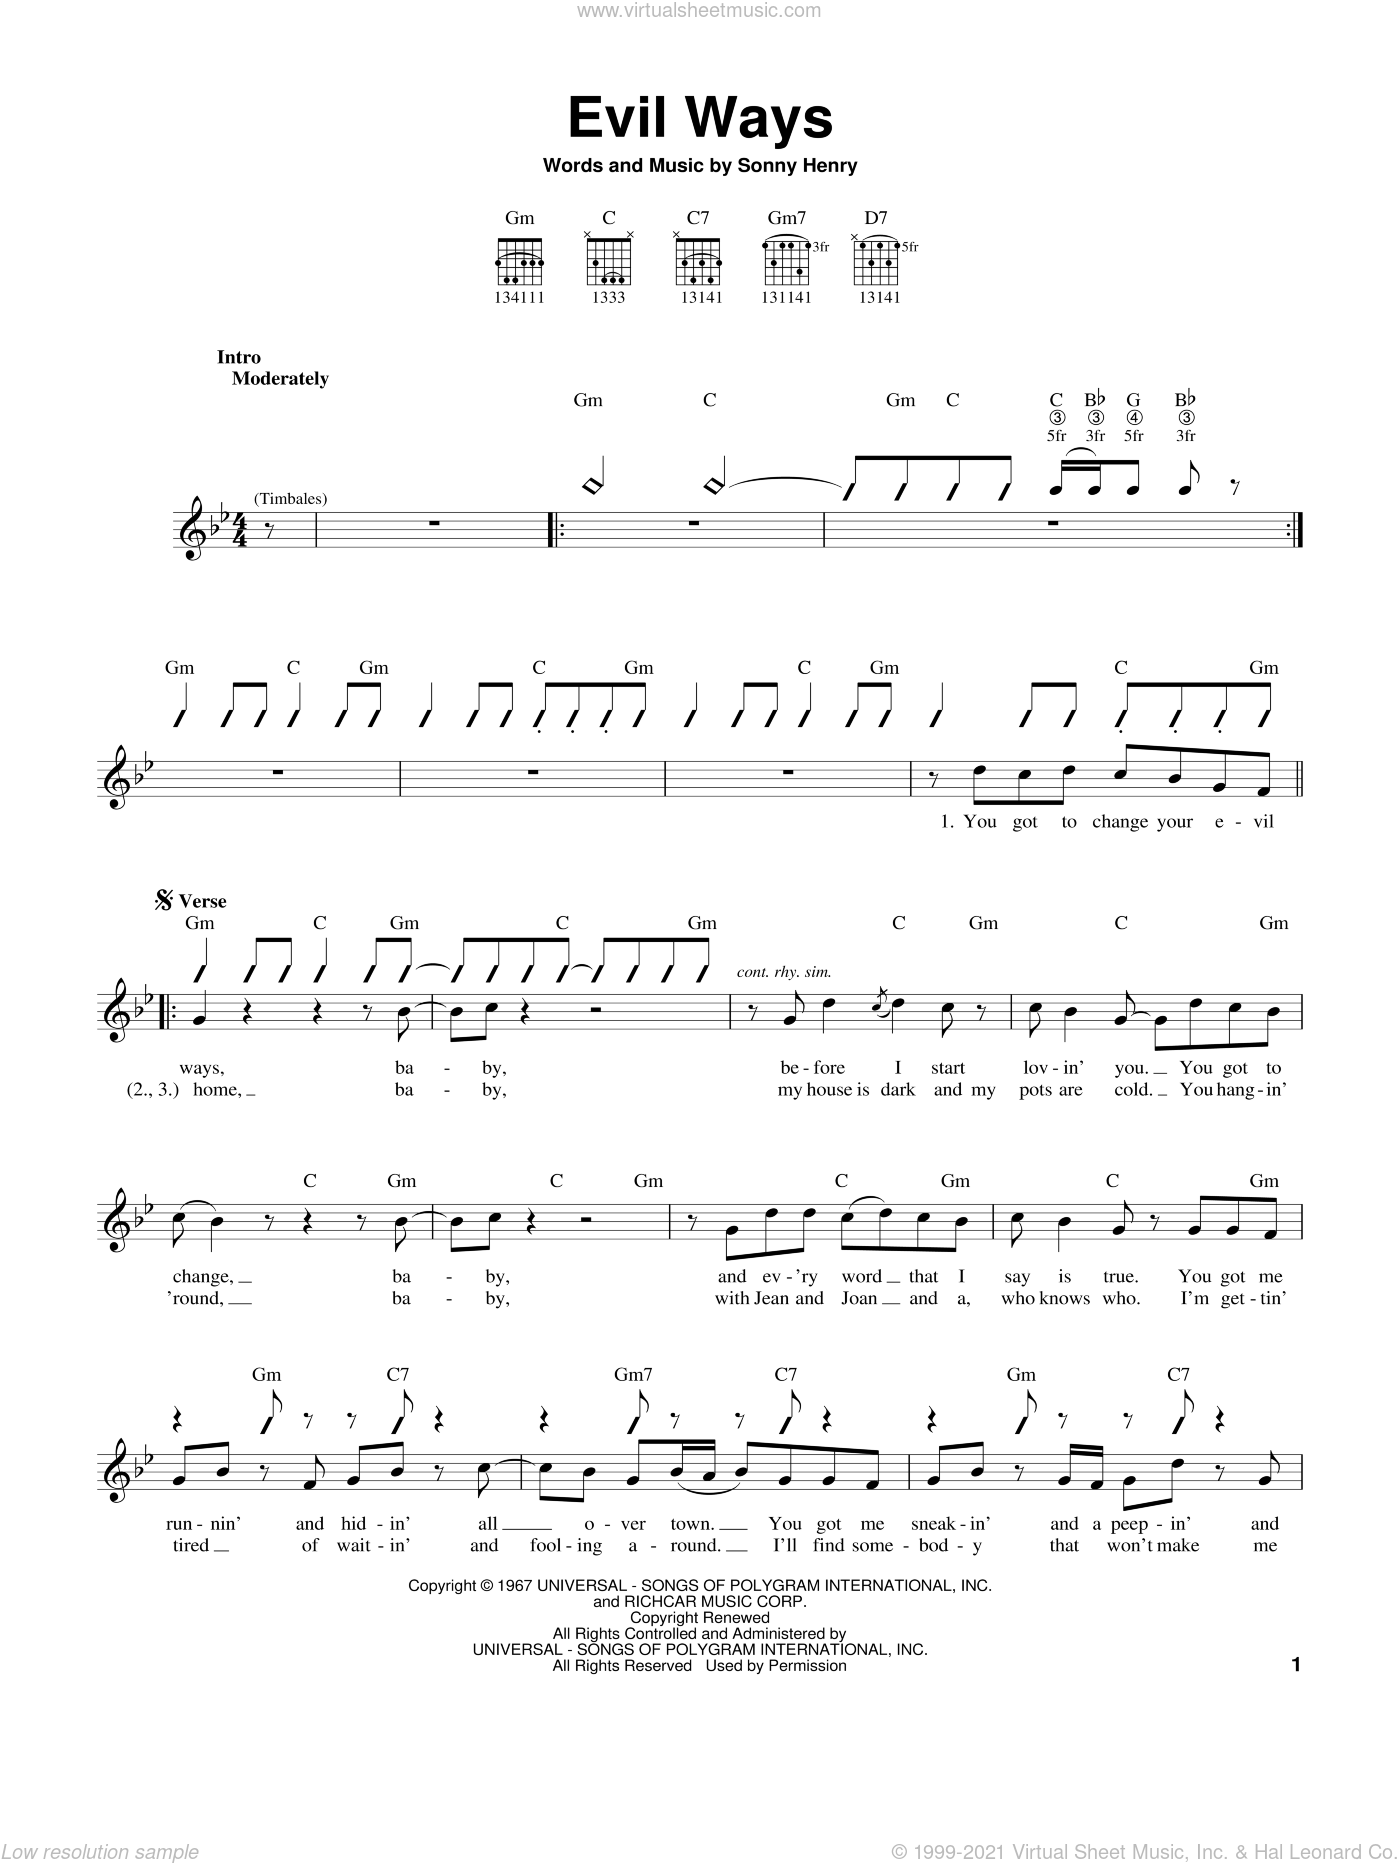 Evil Ways sheet music for guitar solo (chords) by Sonny Henry